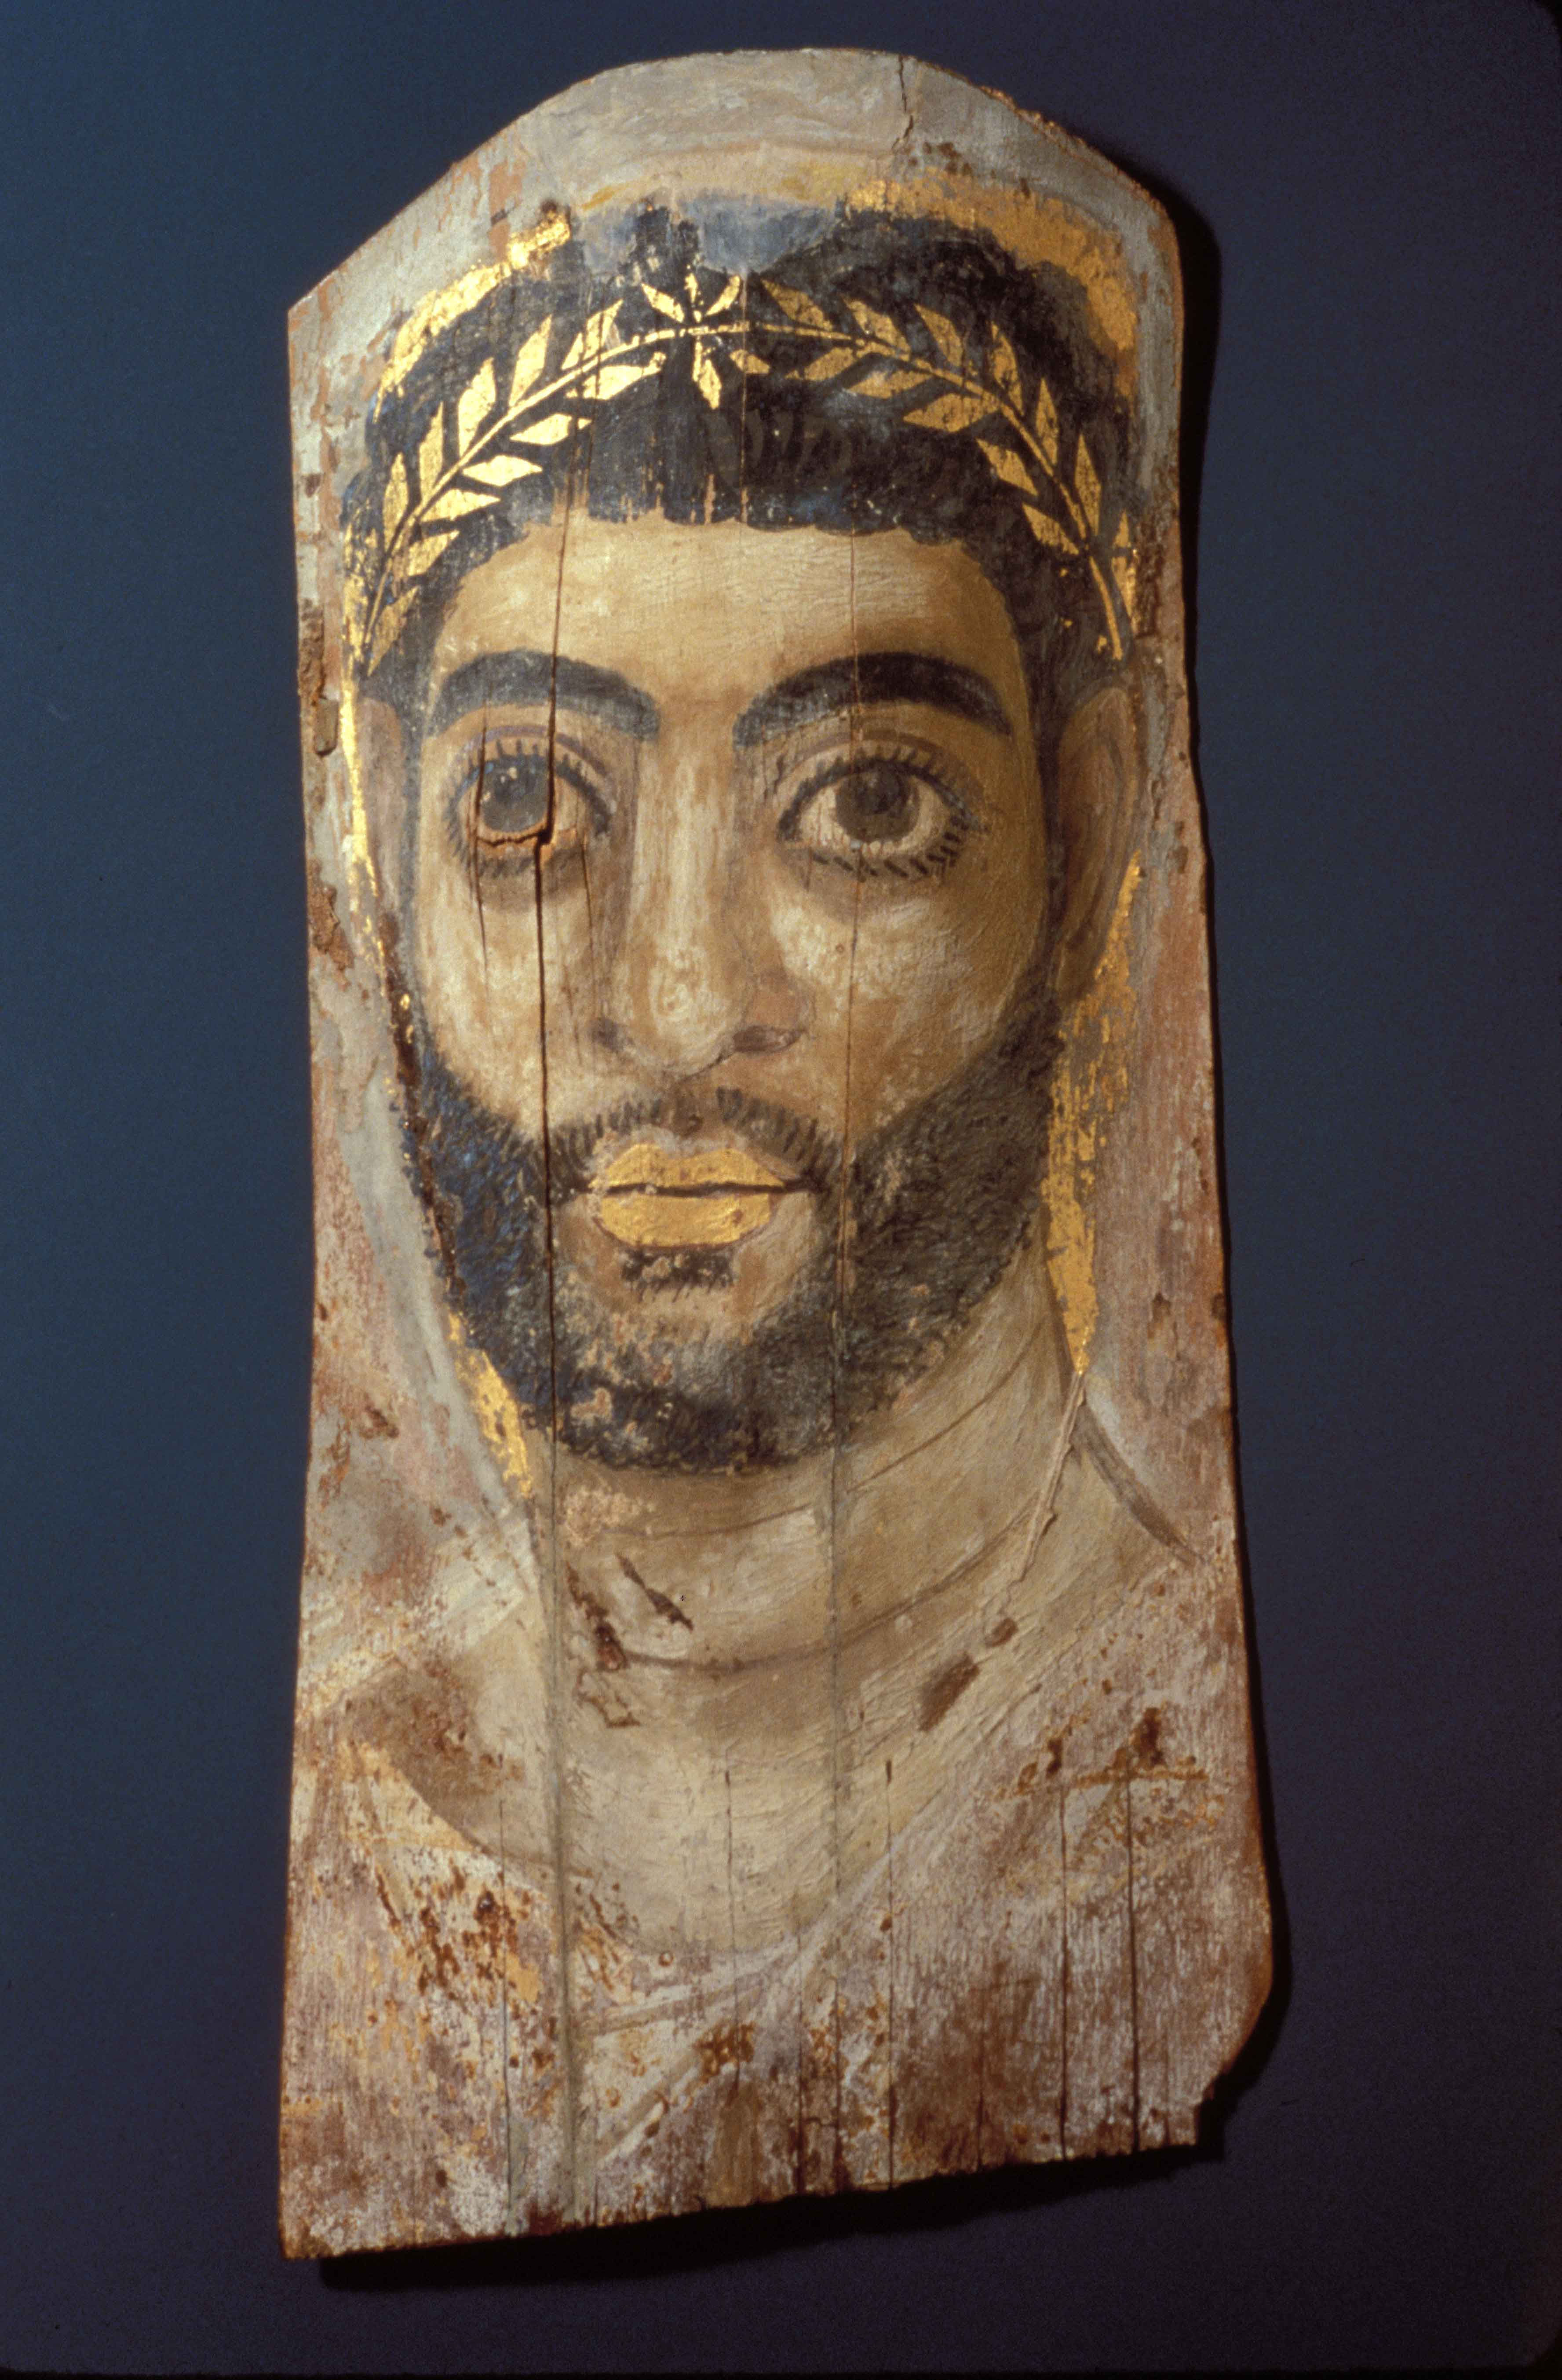 BZ.1937.32, Funerary Portrait of a Bearded Man for a Mummy